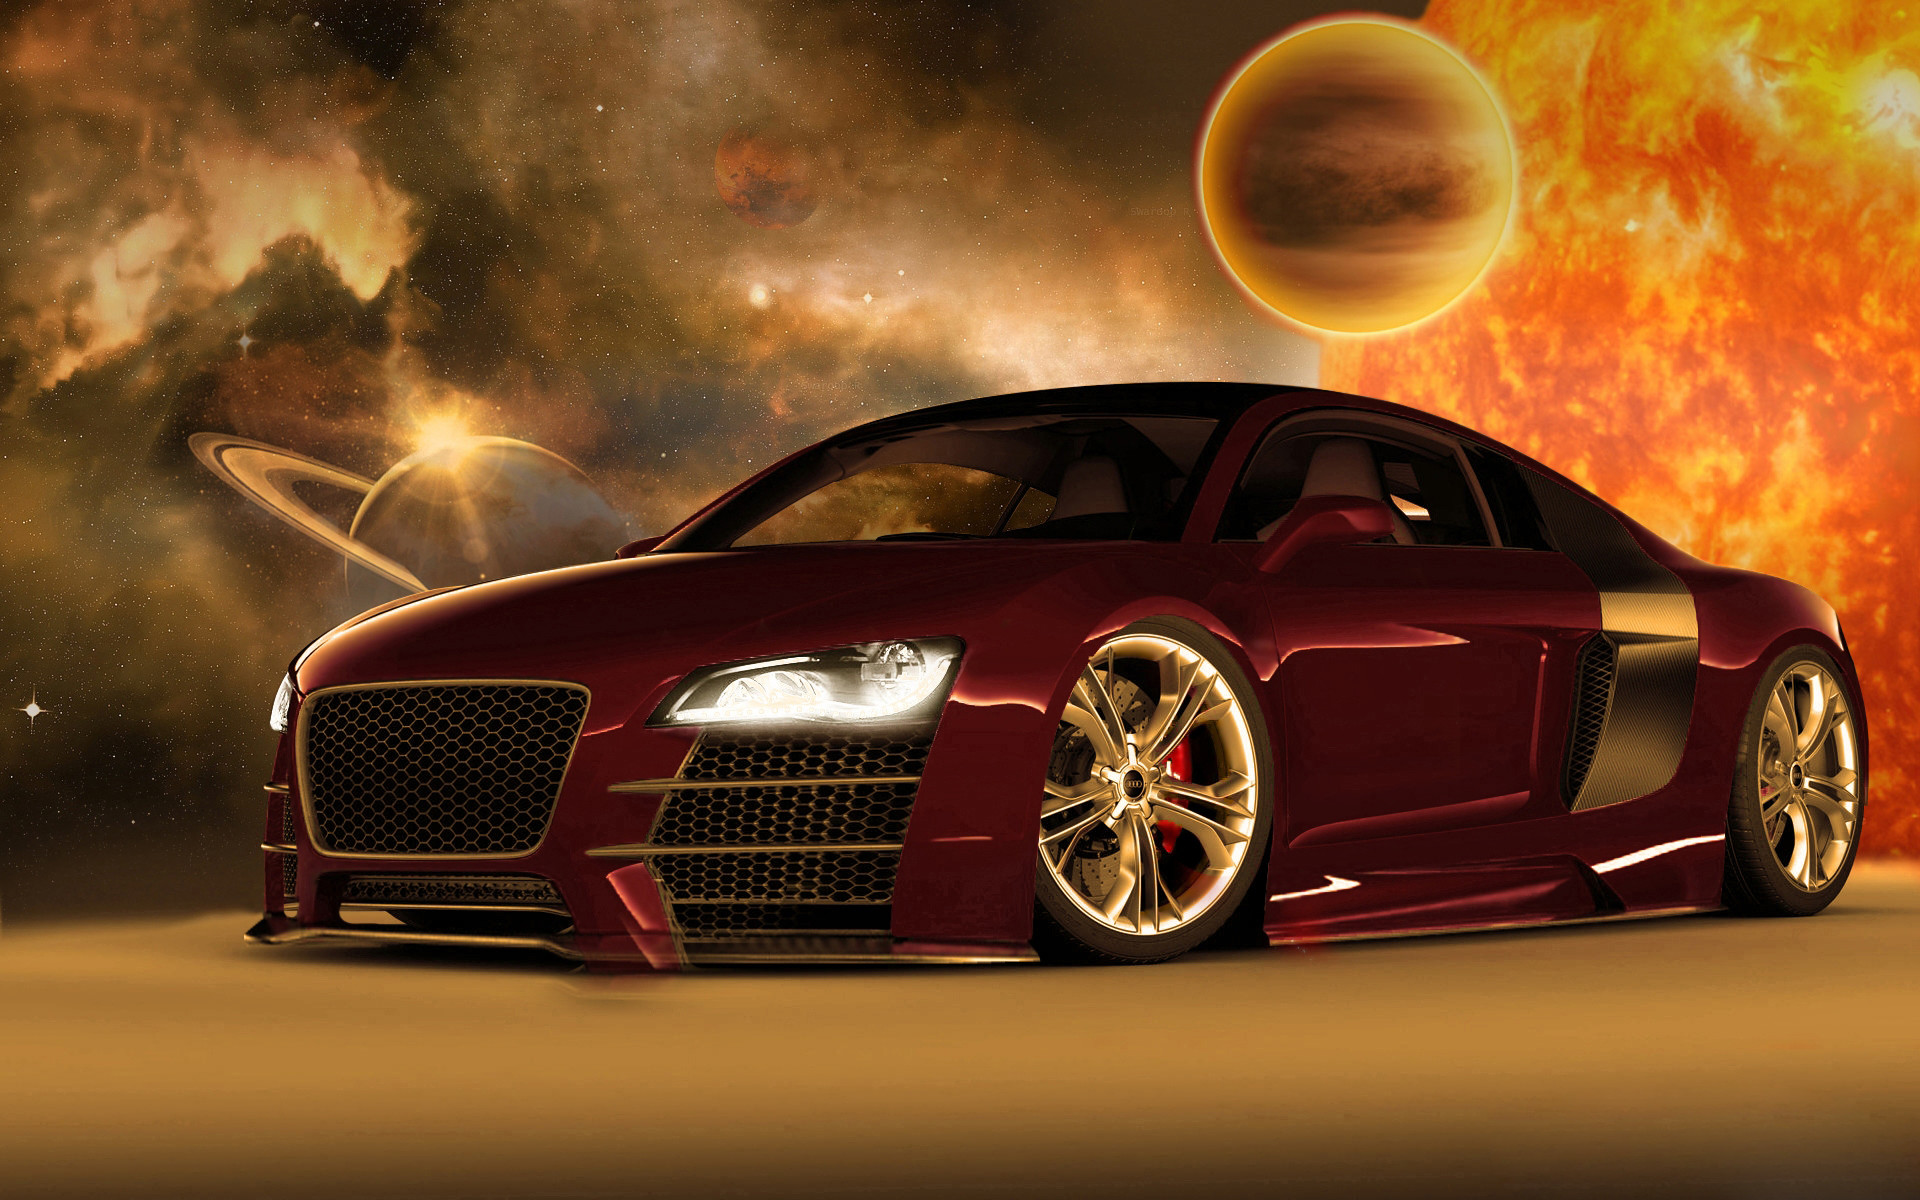 Cool Car Wallpapers HD Images - Amazing cool cars